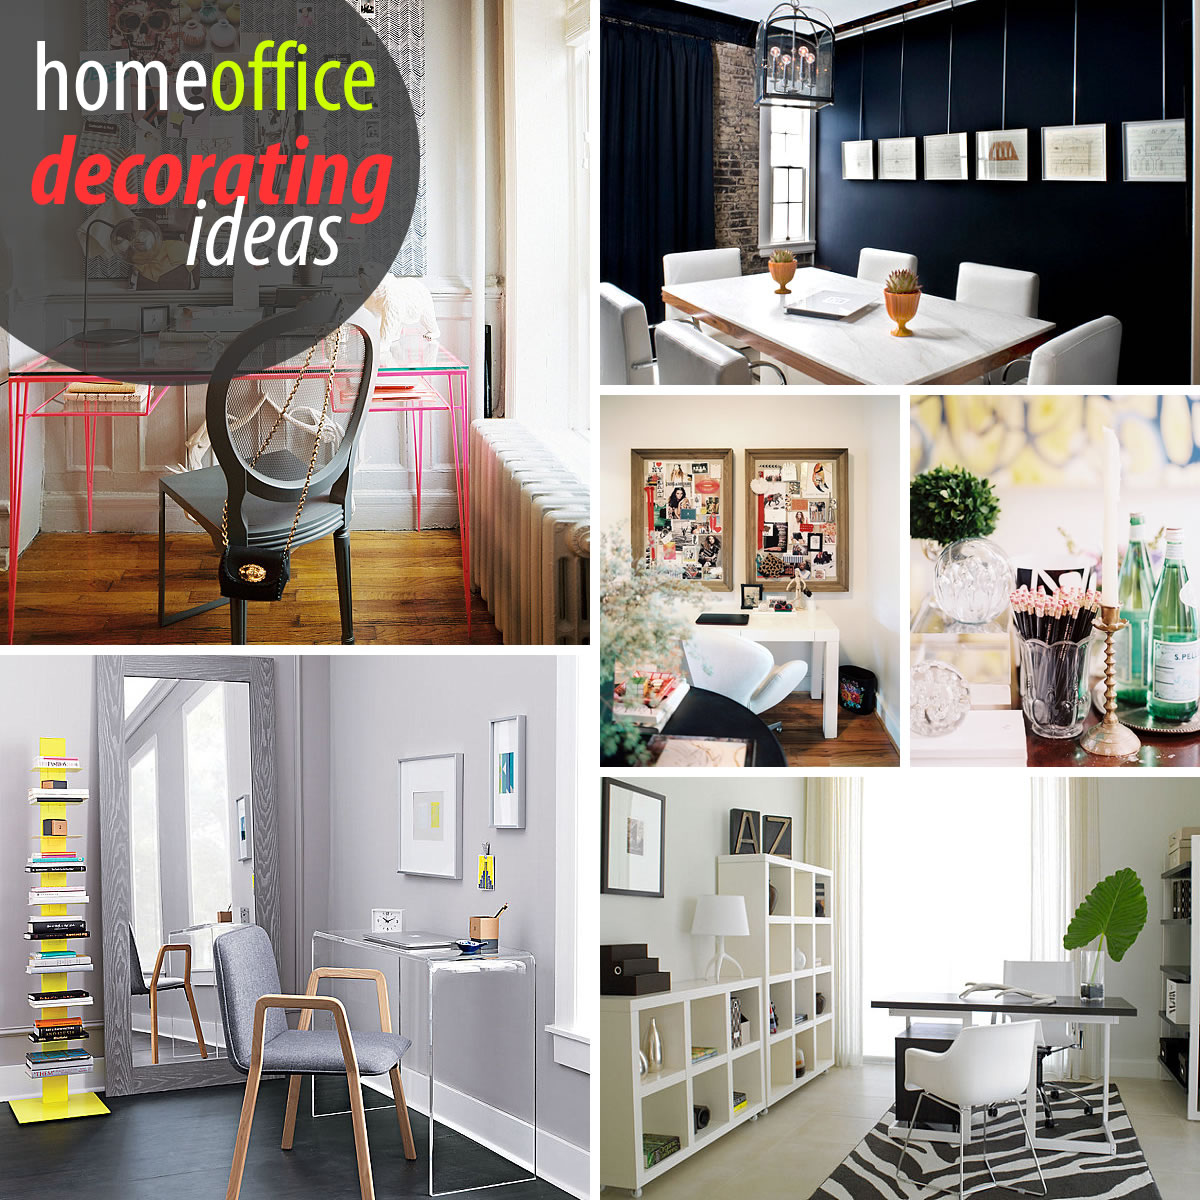 Creative home office decorating ideas for Home decorations unique